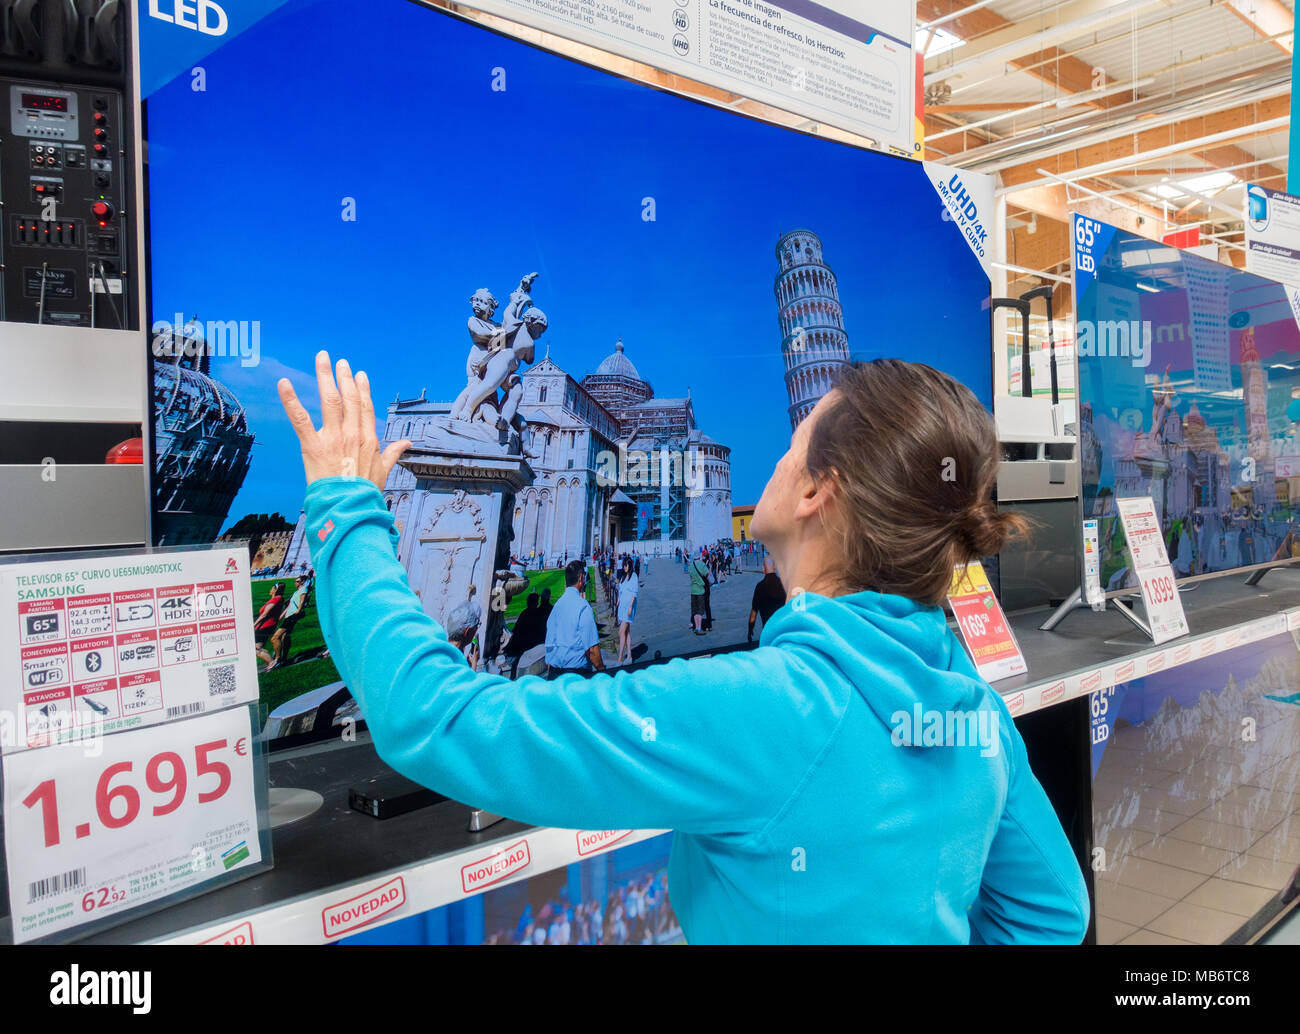 Woman looking at new Samsung High definition 4k curved TV screens in electrical store - Stock Image